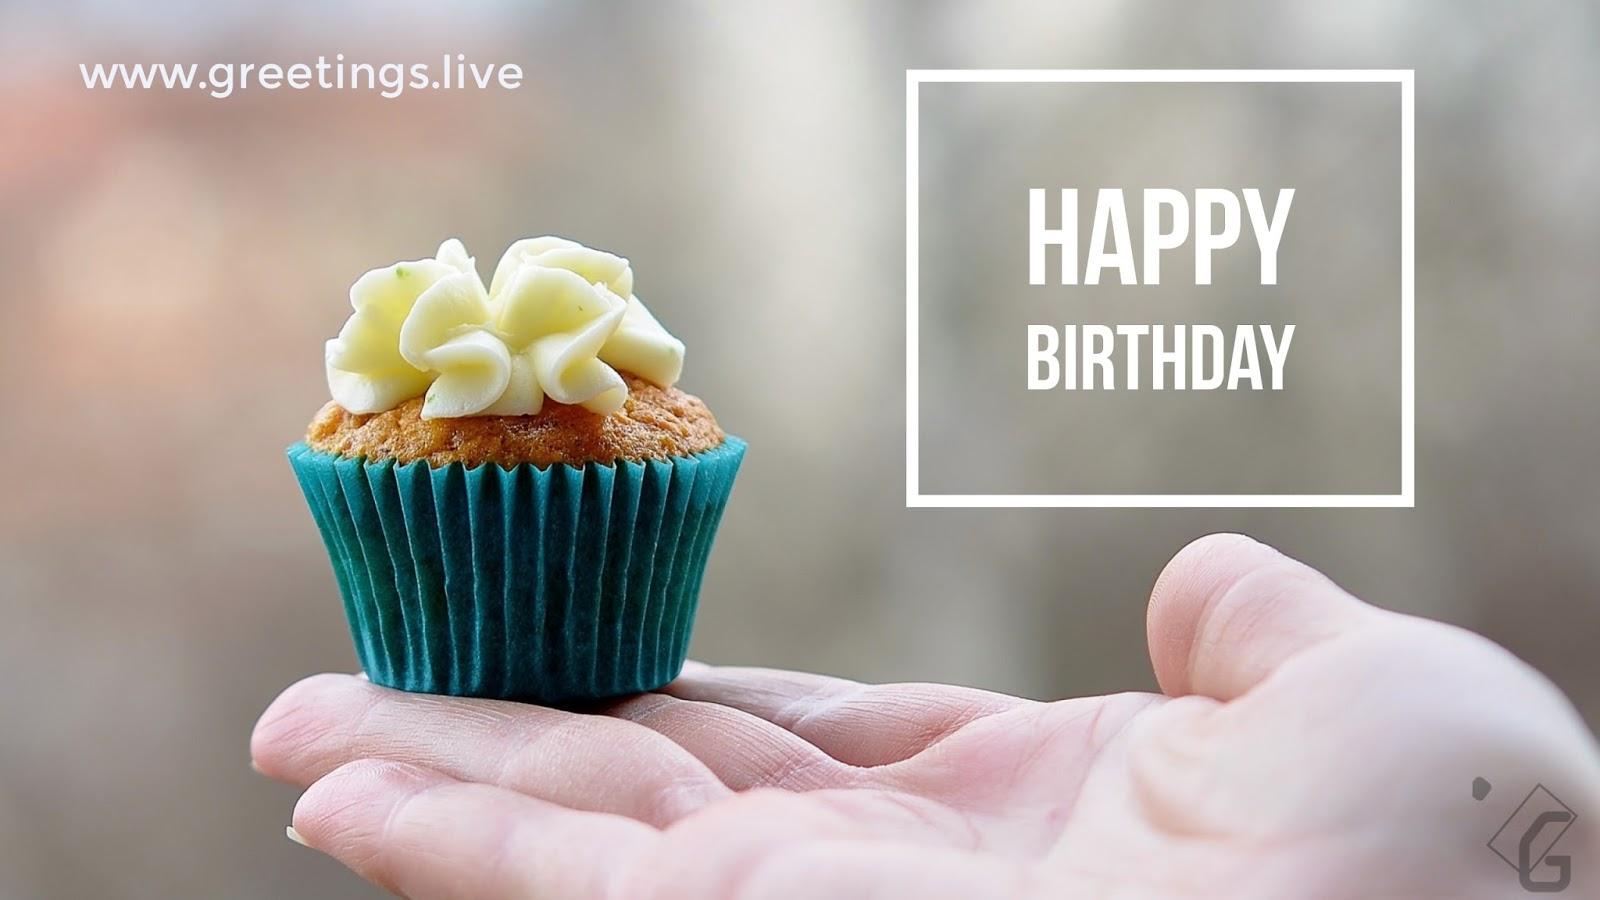 happy birthday wishes hd images free download ; Happy%252Bbirthday%252BWishes%252Bwith%252BCreative%252Bhand